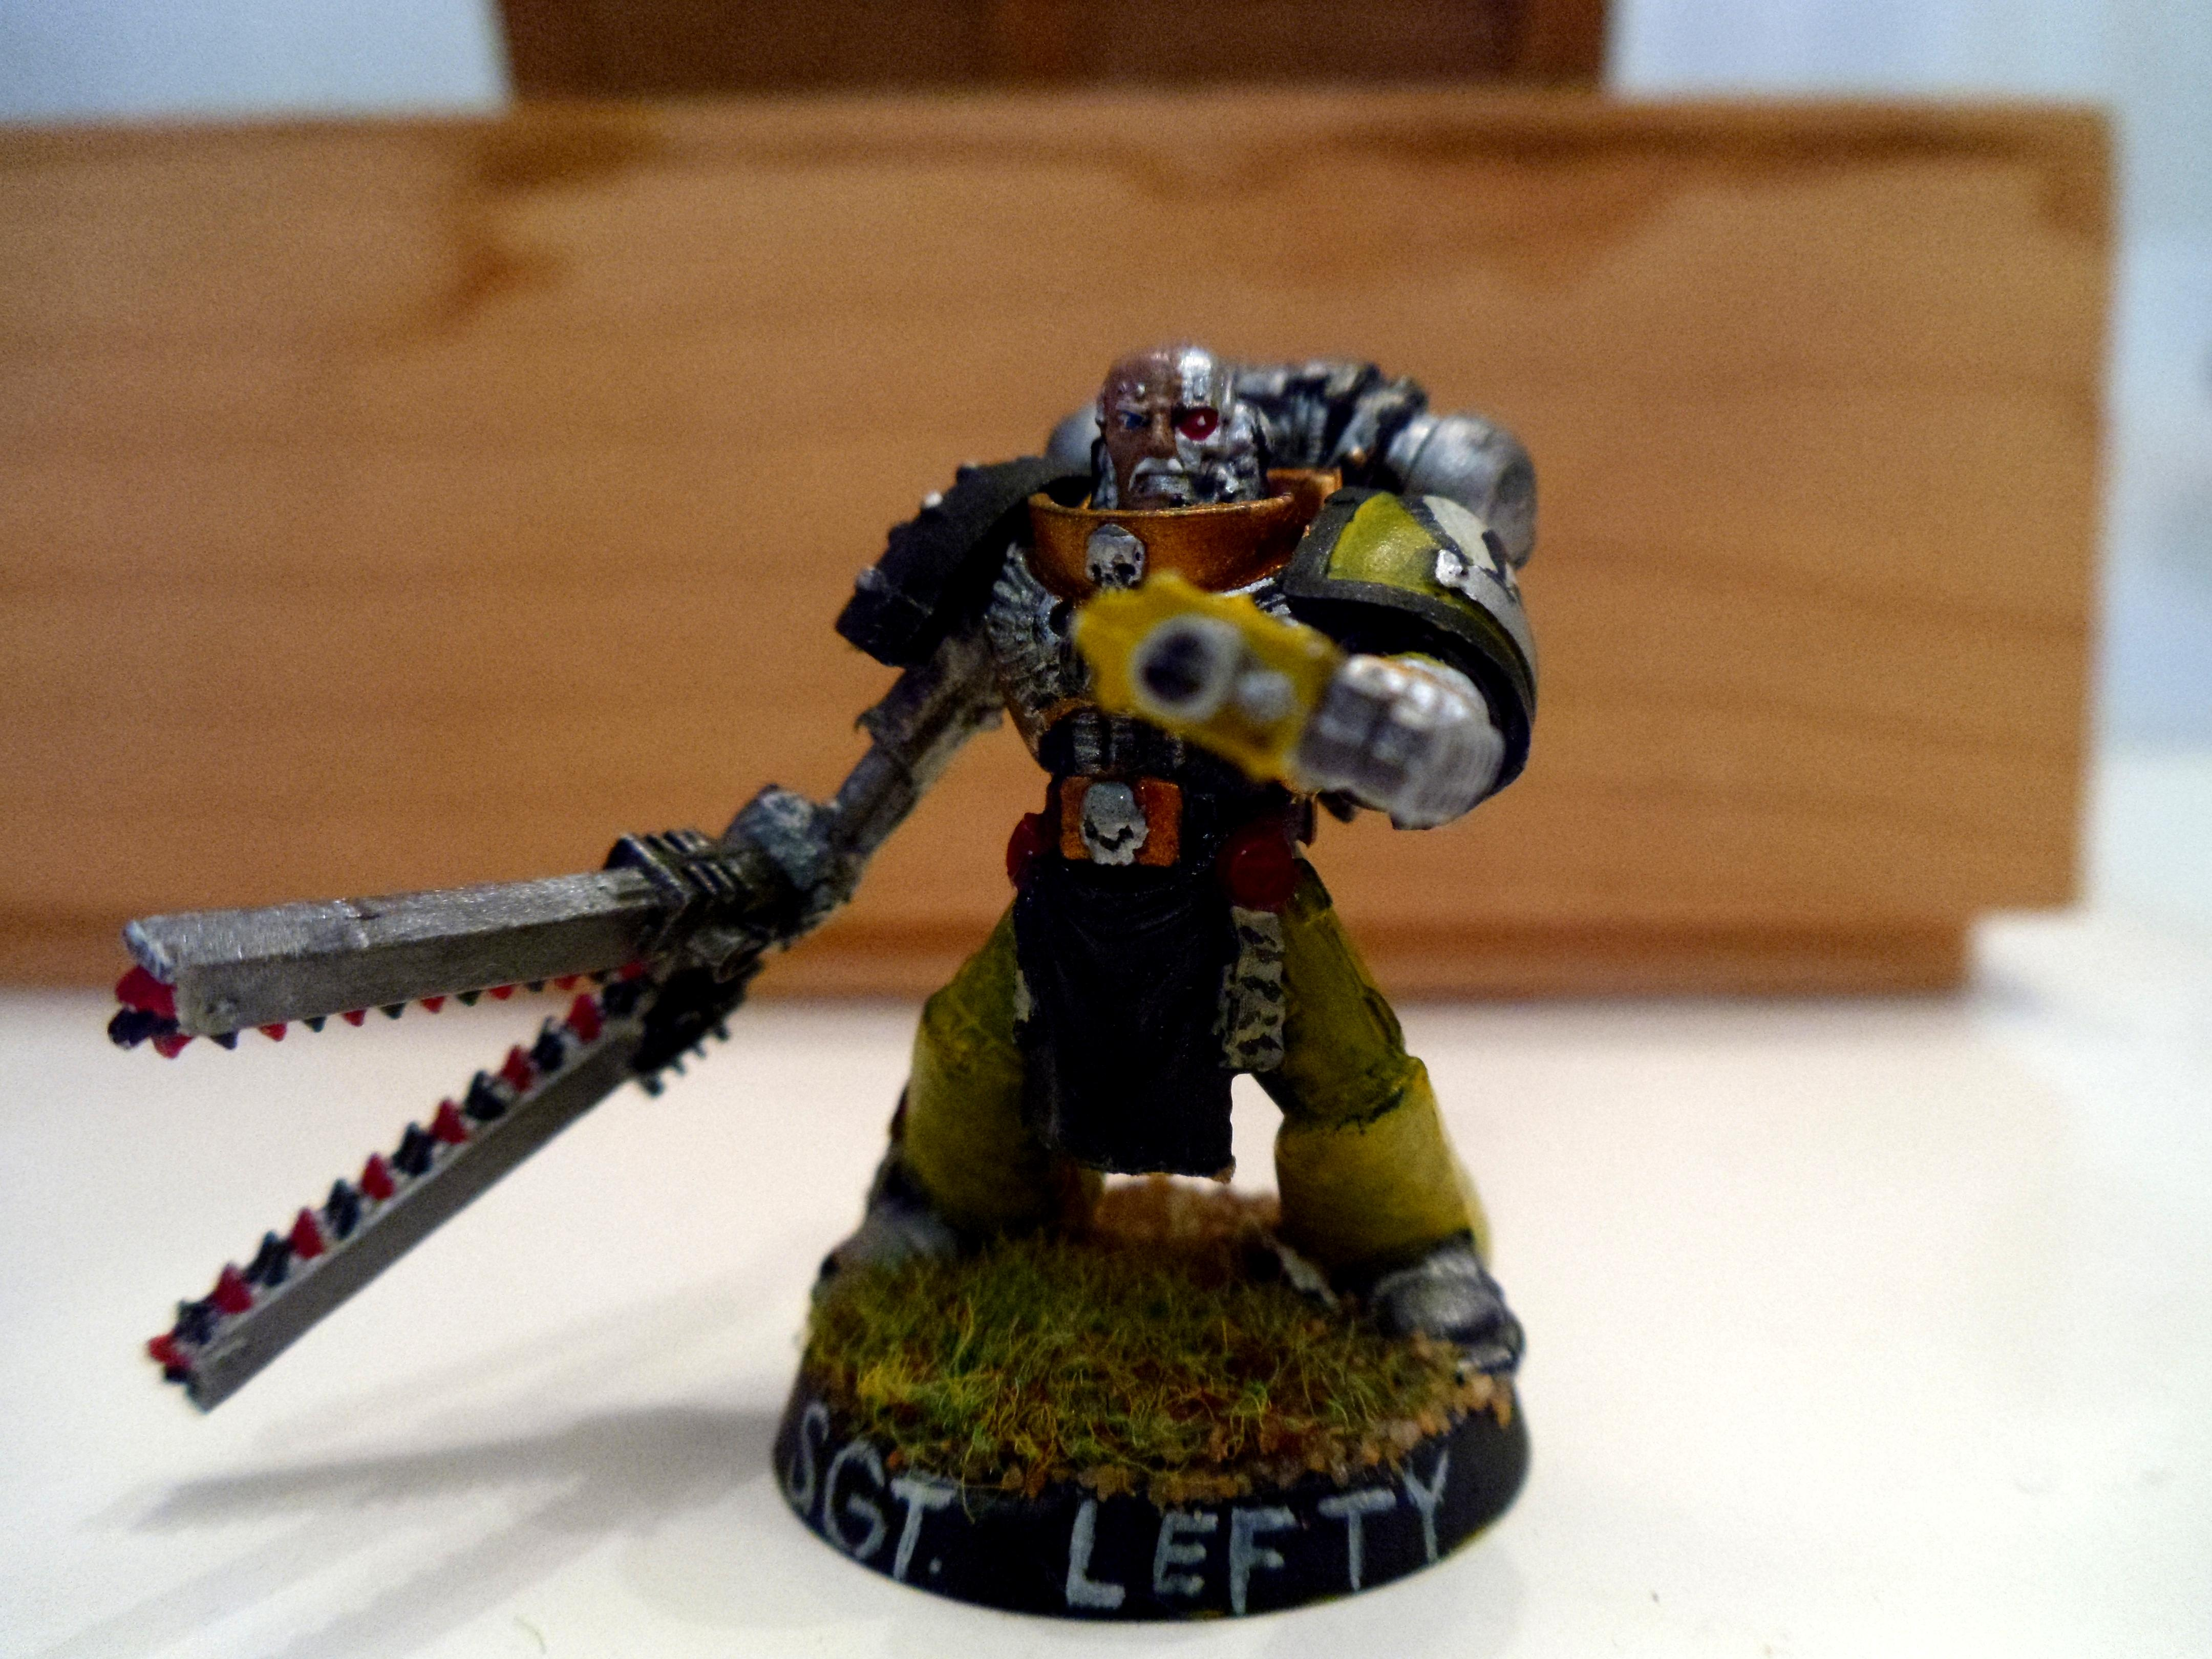 Sgt Lefty